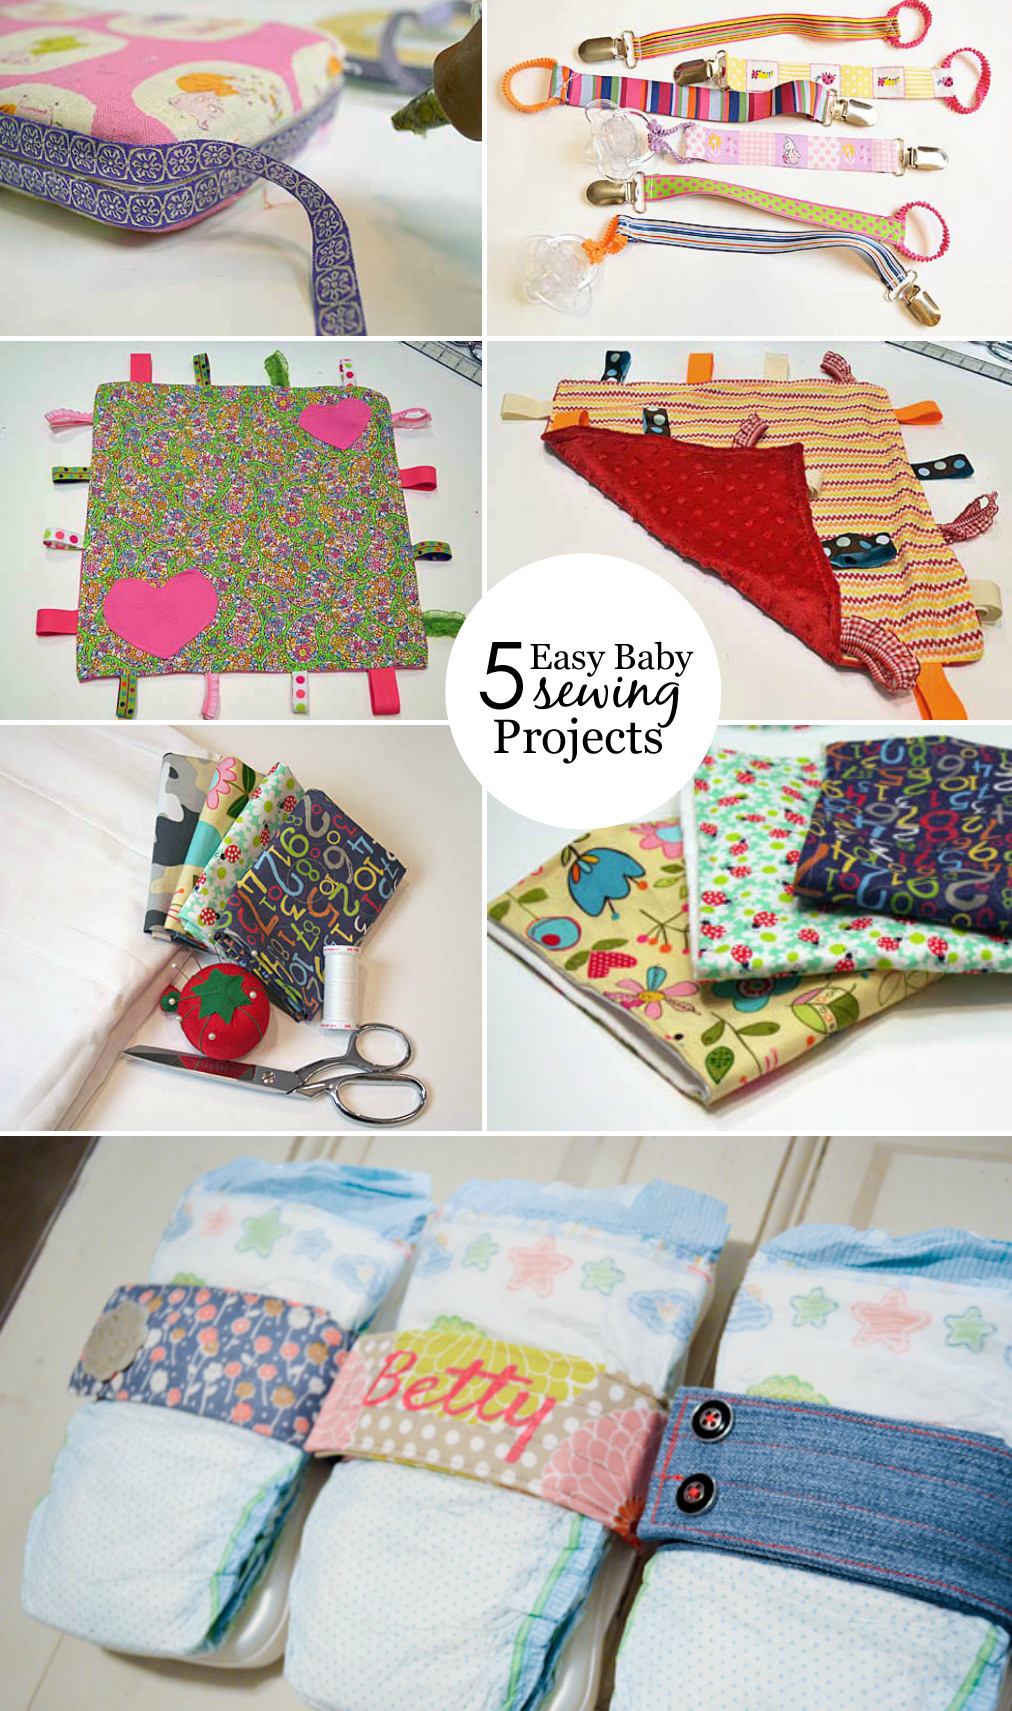 Best ideas about DIY Baby Crafts . Save or Pin Easy Baby Sewing Projects Project Nursery Now.